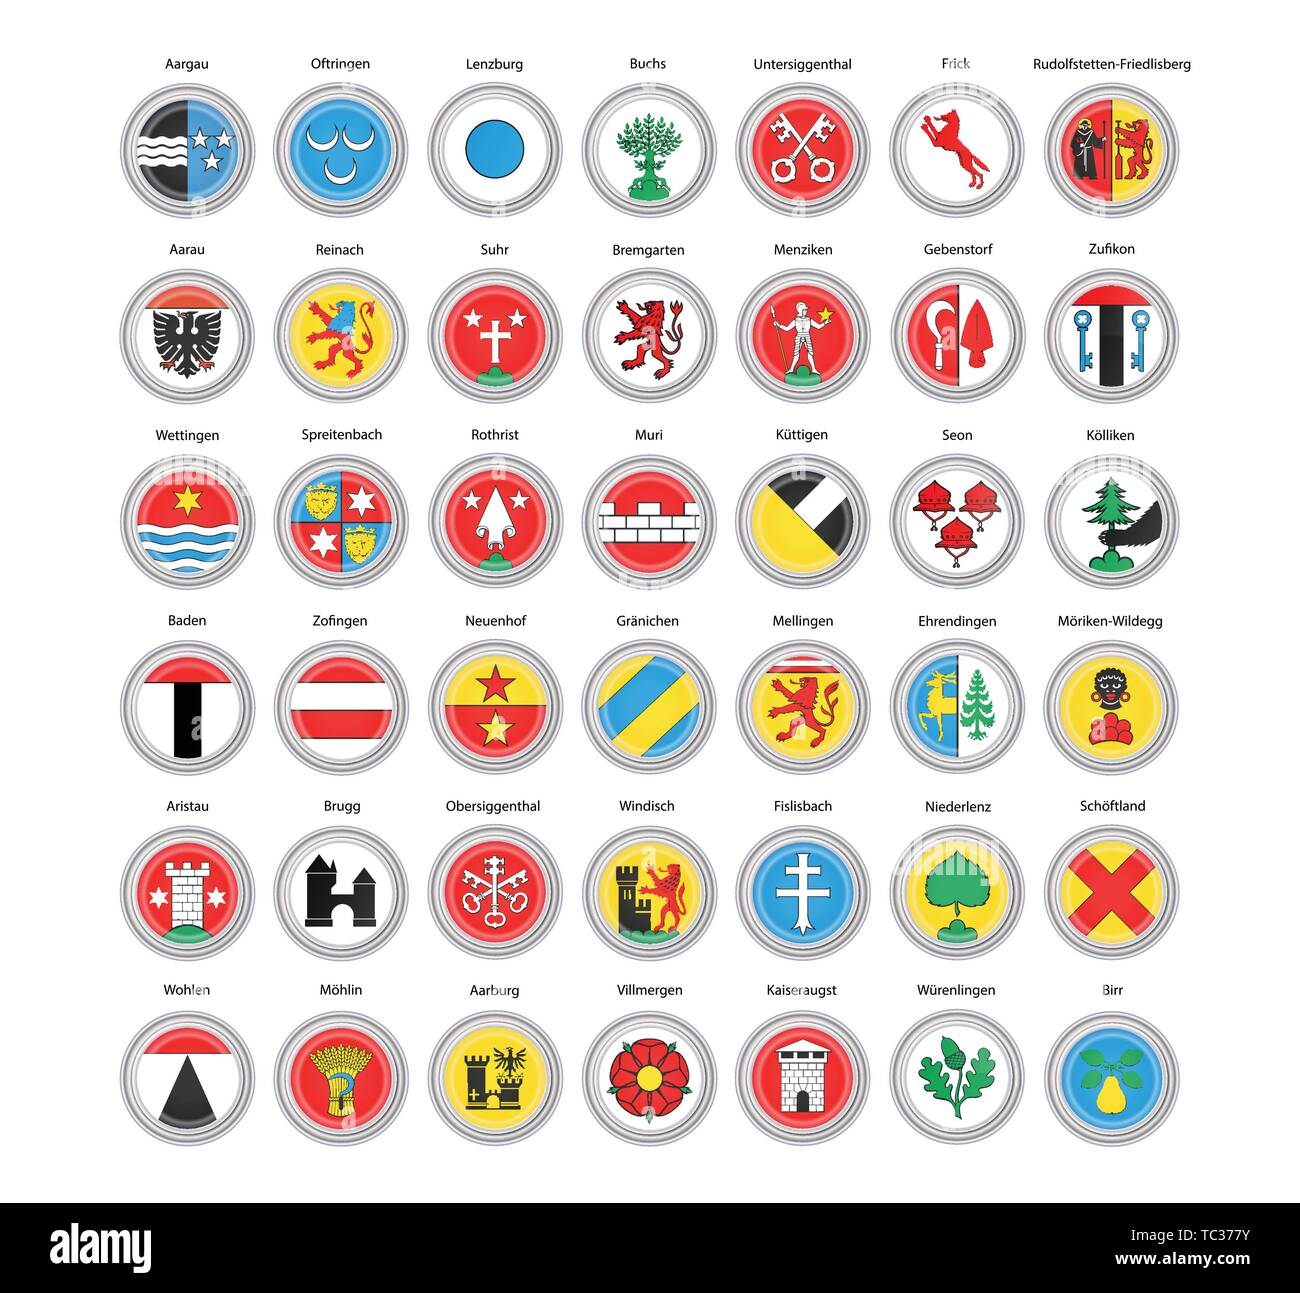 Set of vector icons. Municipalities of Aargau canton flags, Switzerland. 3D illustration. - Stock Image